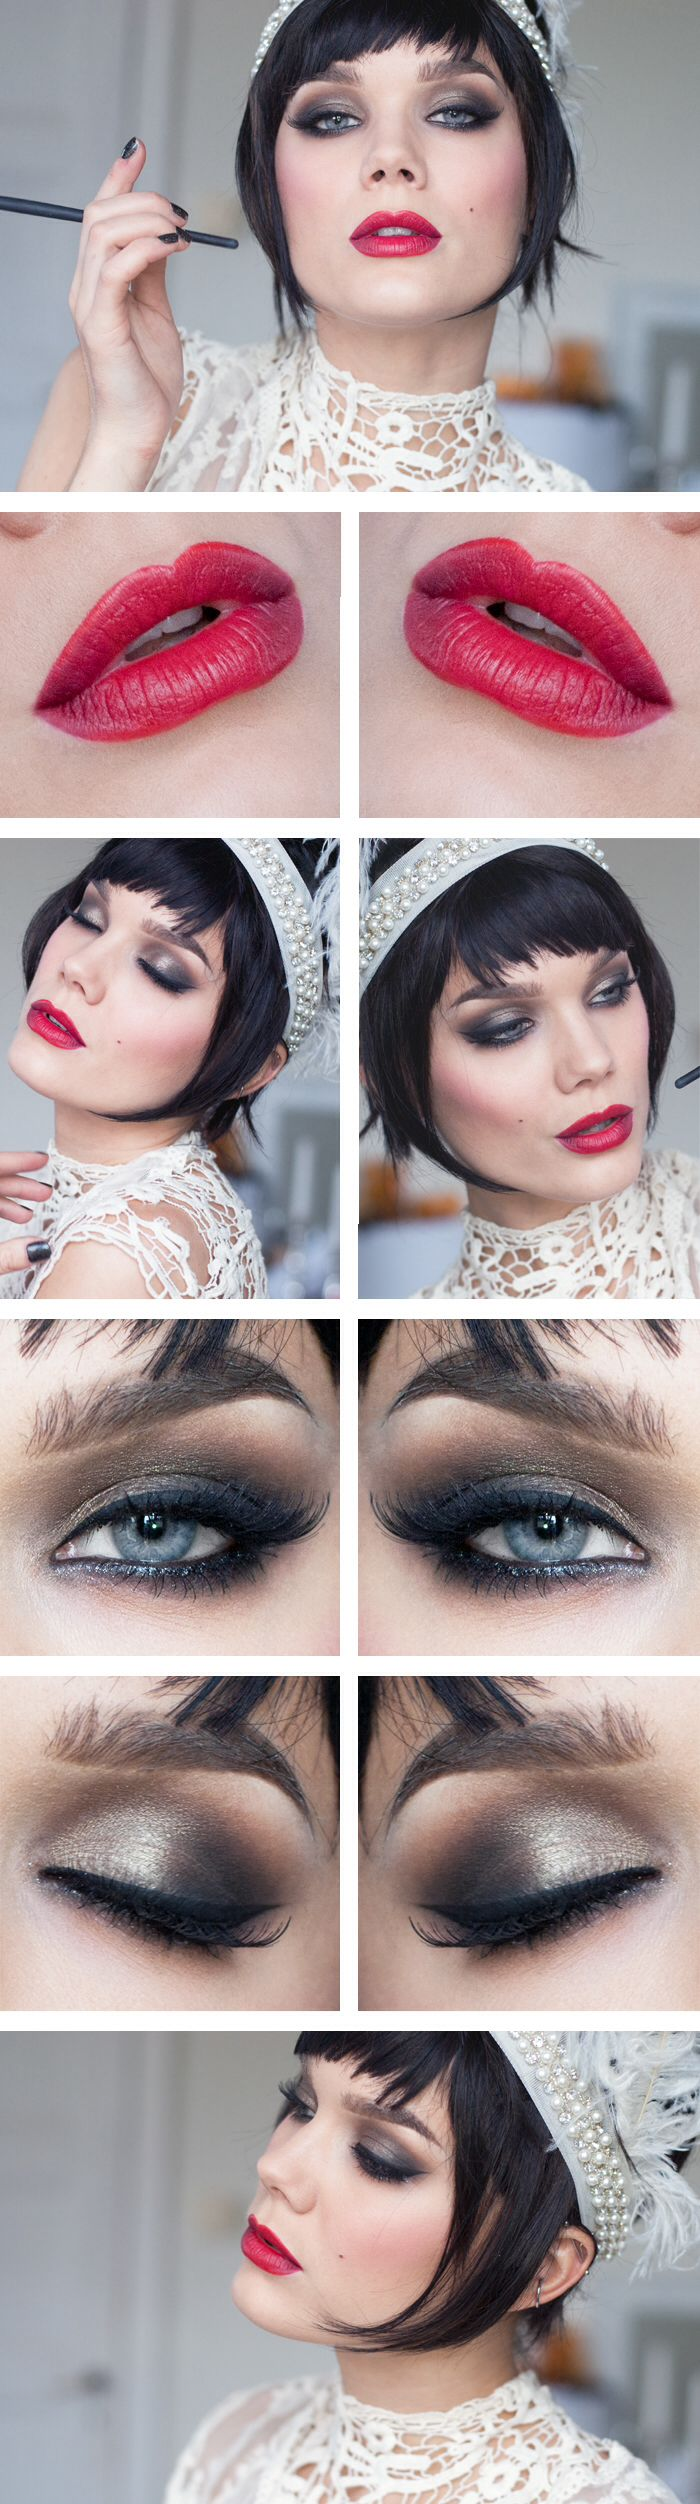 Halloween how to sexy 20s flapper girl makeup flapper makeup halloween how to sexy 20s flapper girl makeup flapper makeup girls makeup and flapper girls baditri Gallery